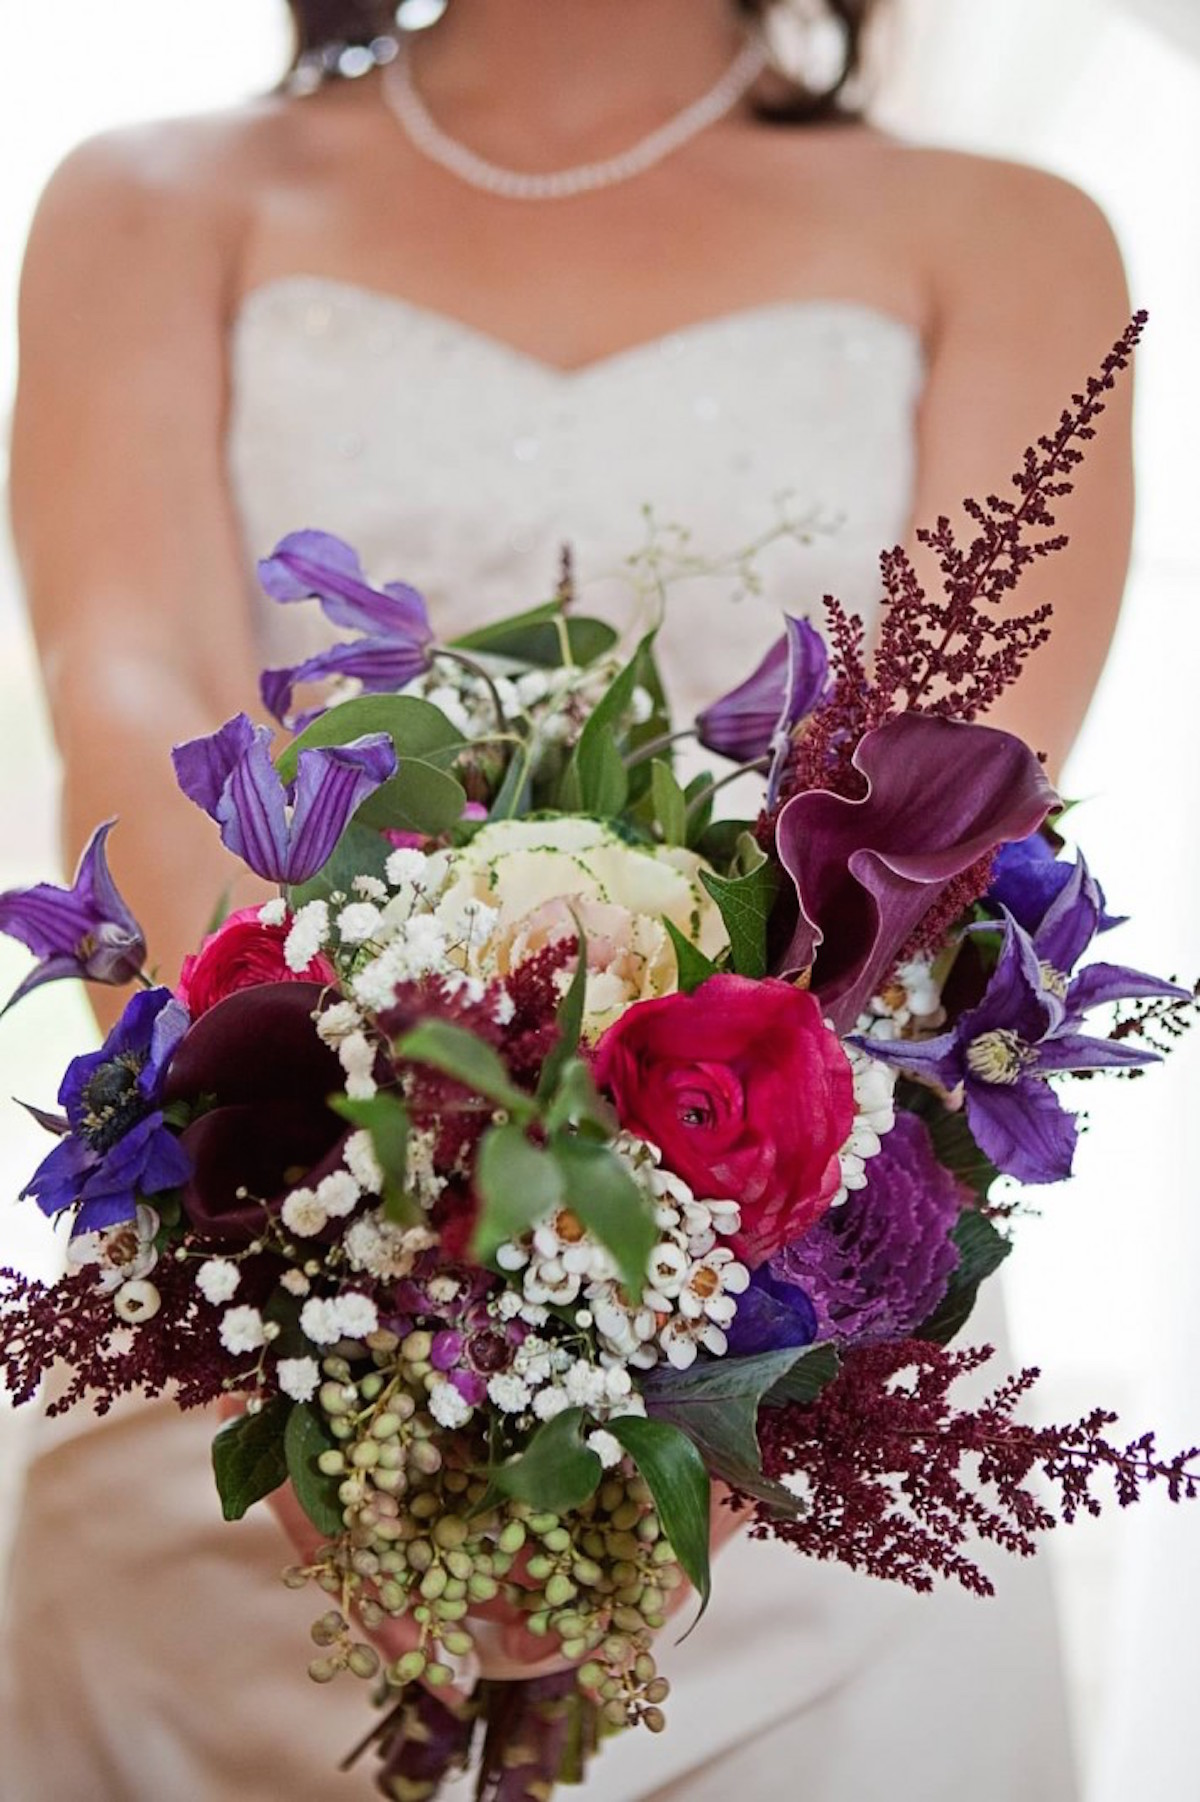 mini kale accented by ranunculus, waxflower, astilbe, calla lilies and purple clematis/Courtesy photo